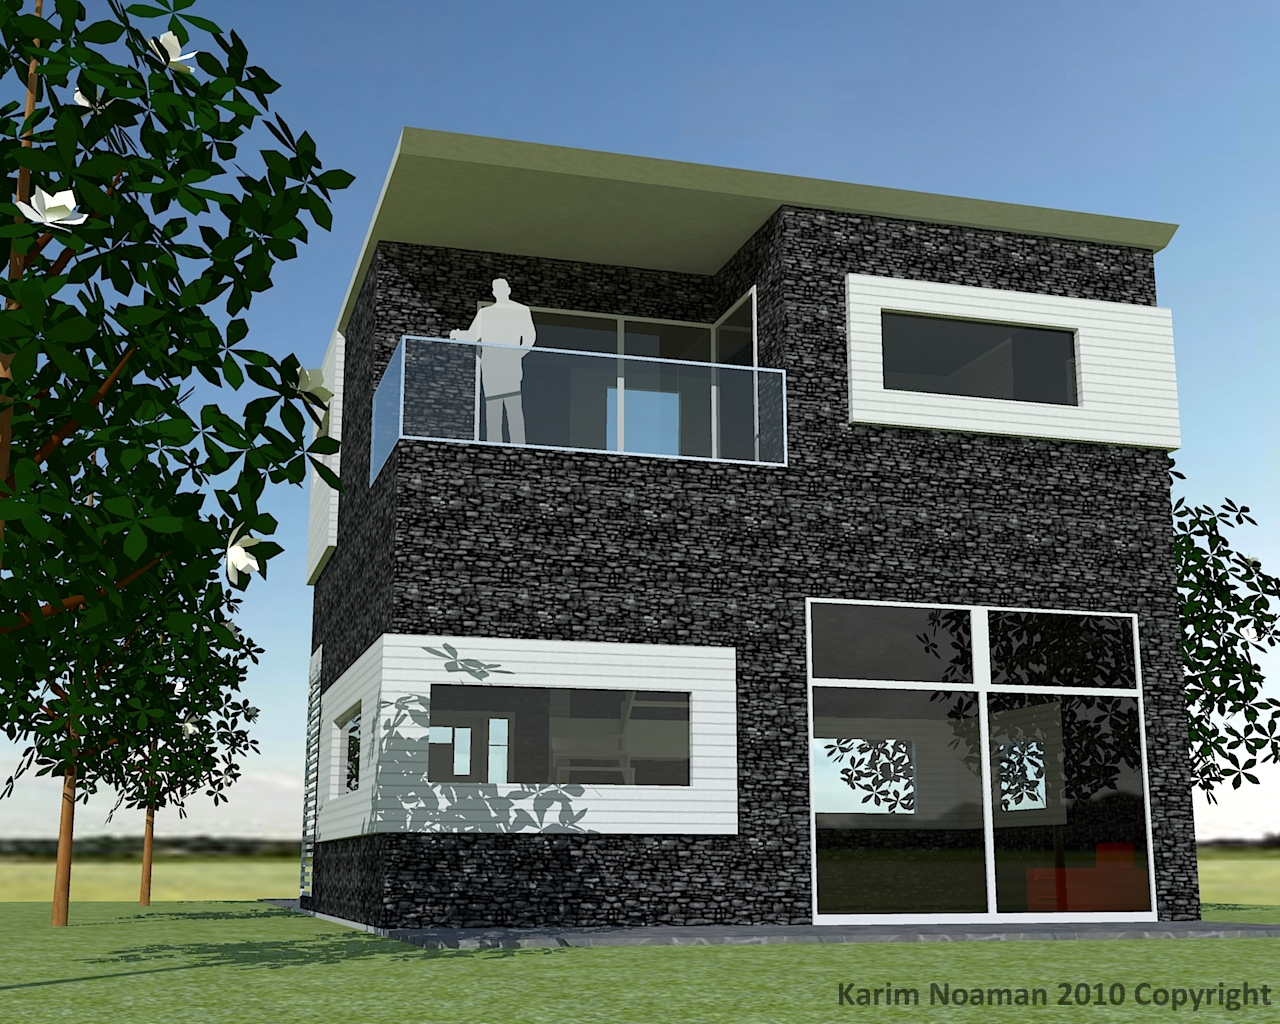 Simple modern house design by knoaman on deviantart for Best simple home design